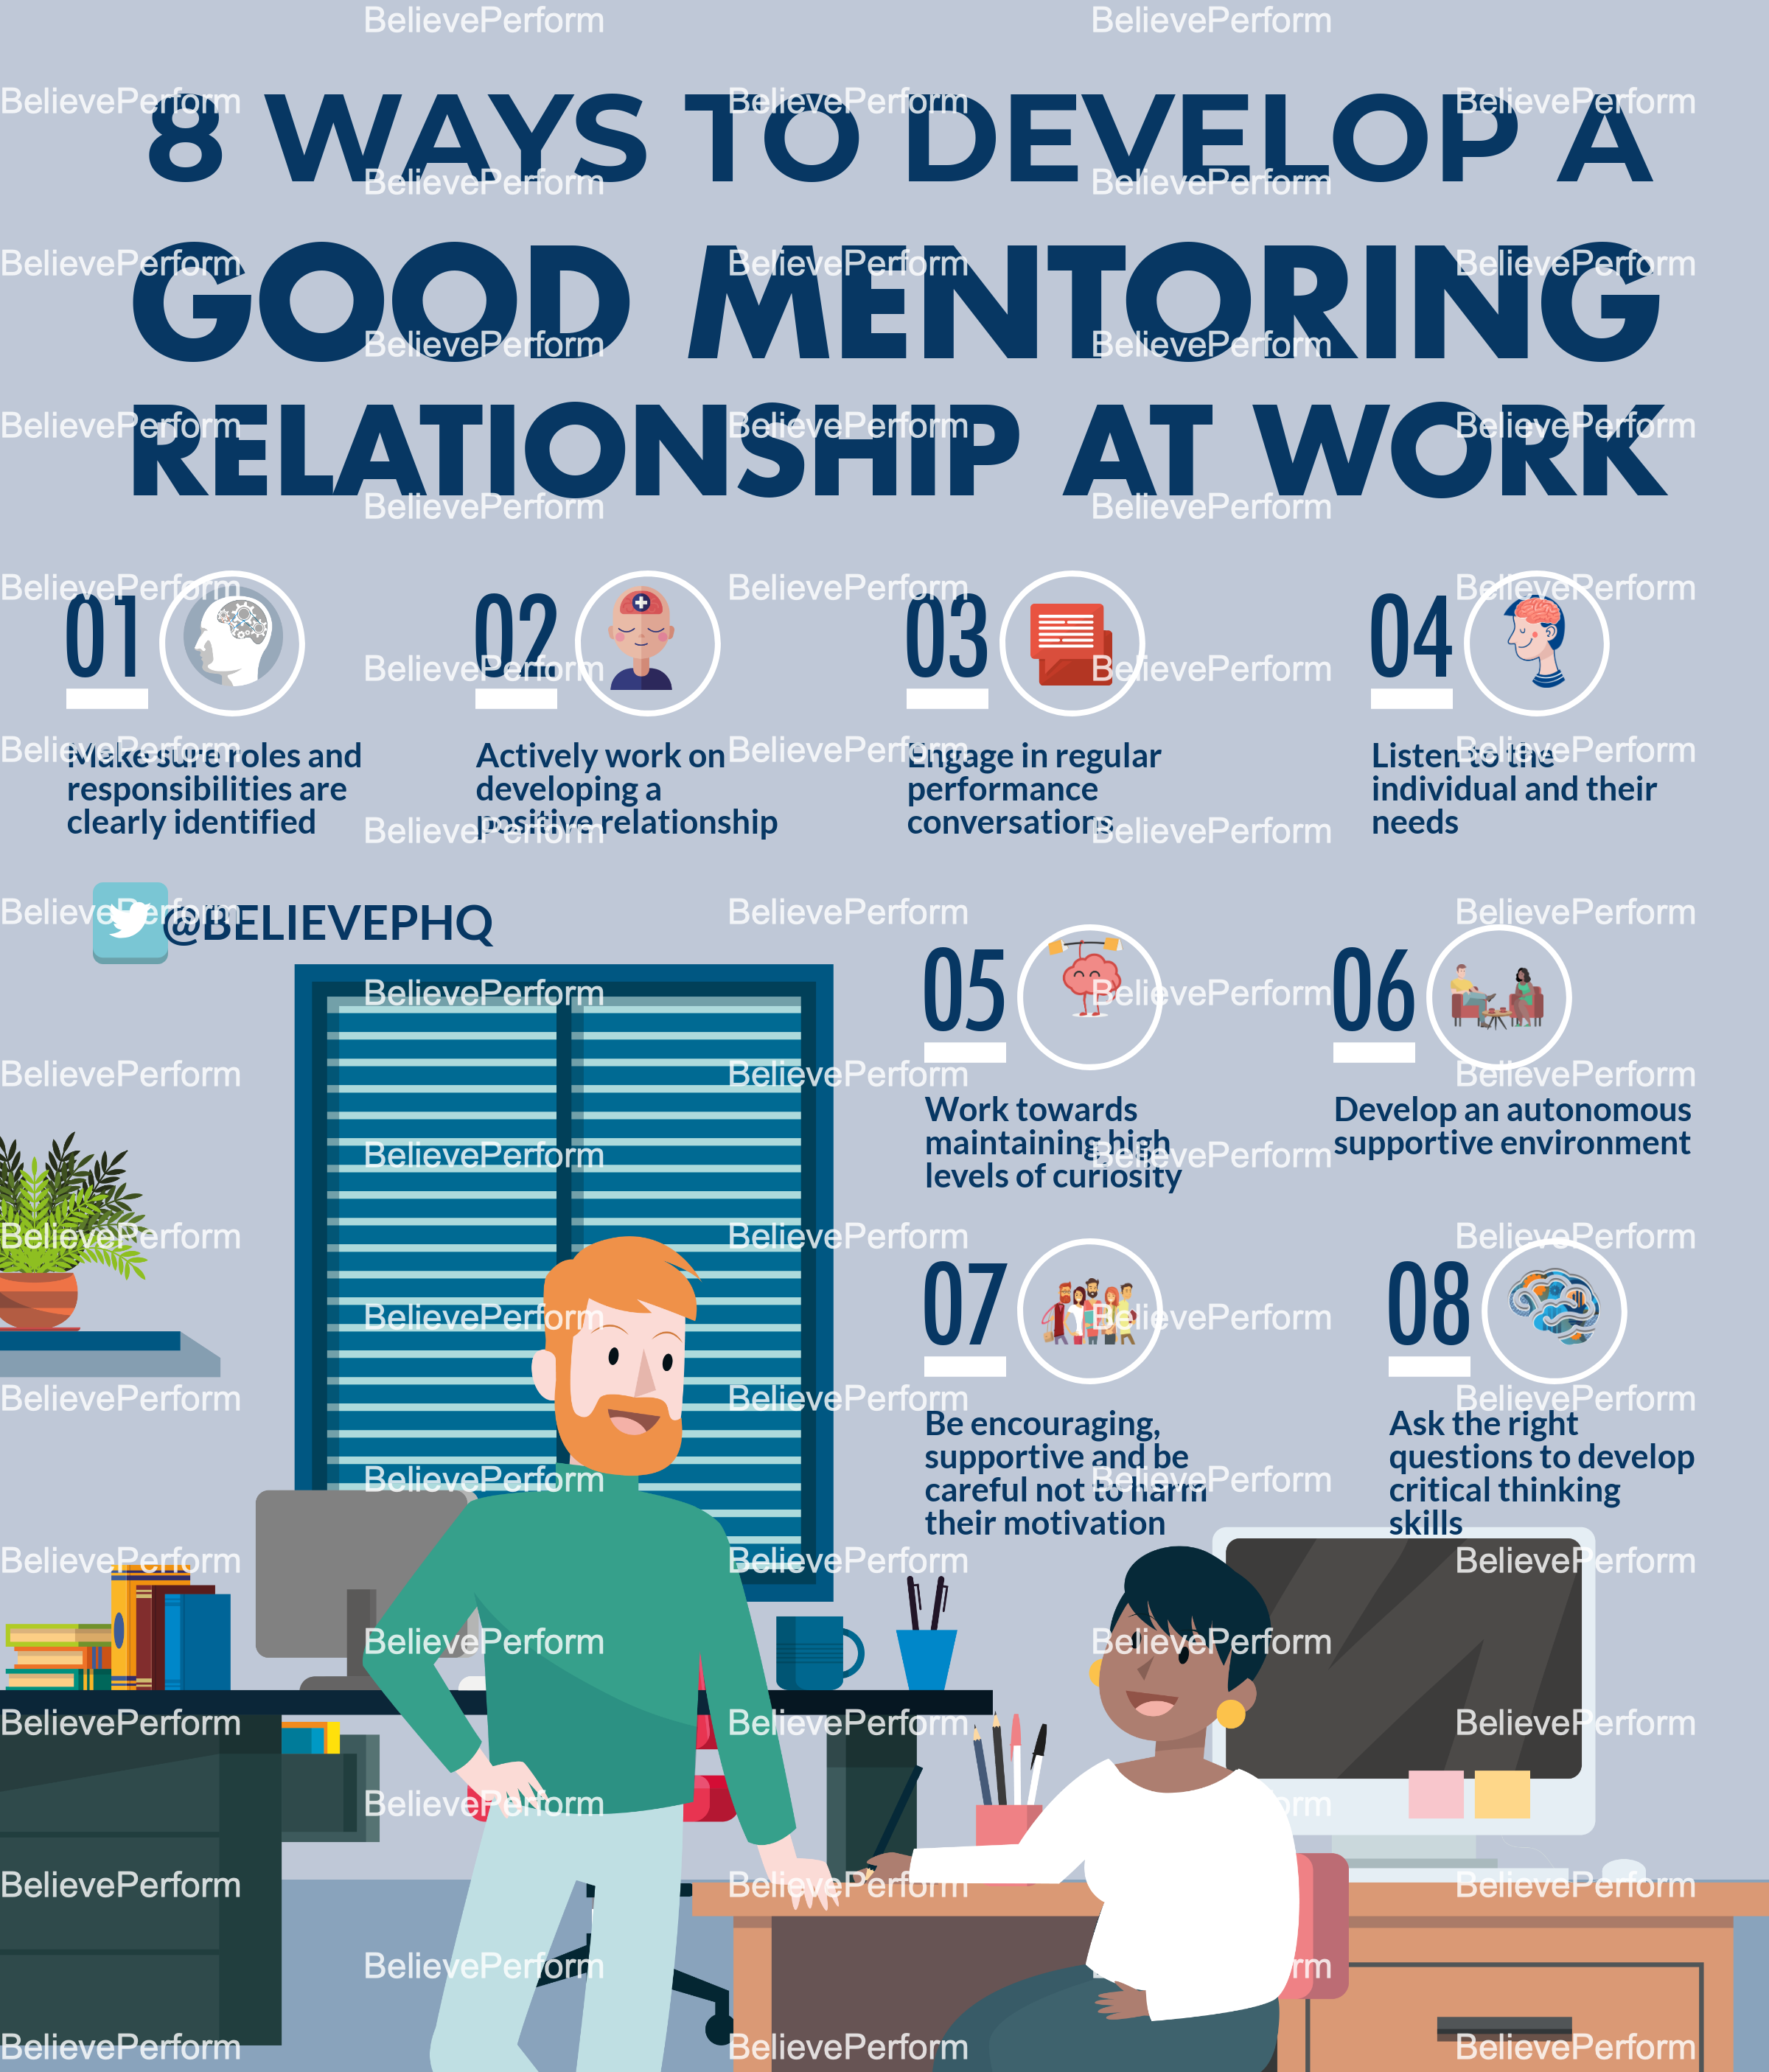 8 ways to develop a good mentoring relationship at work